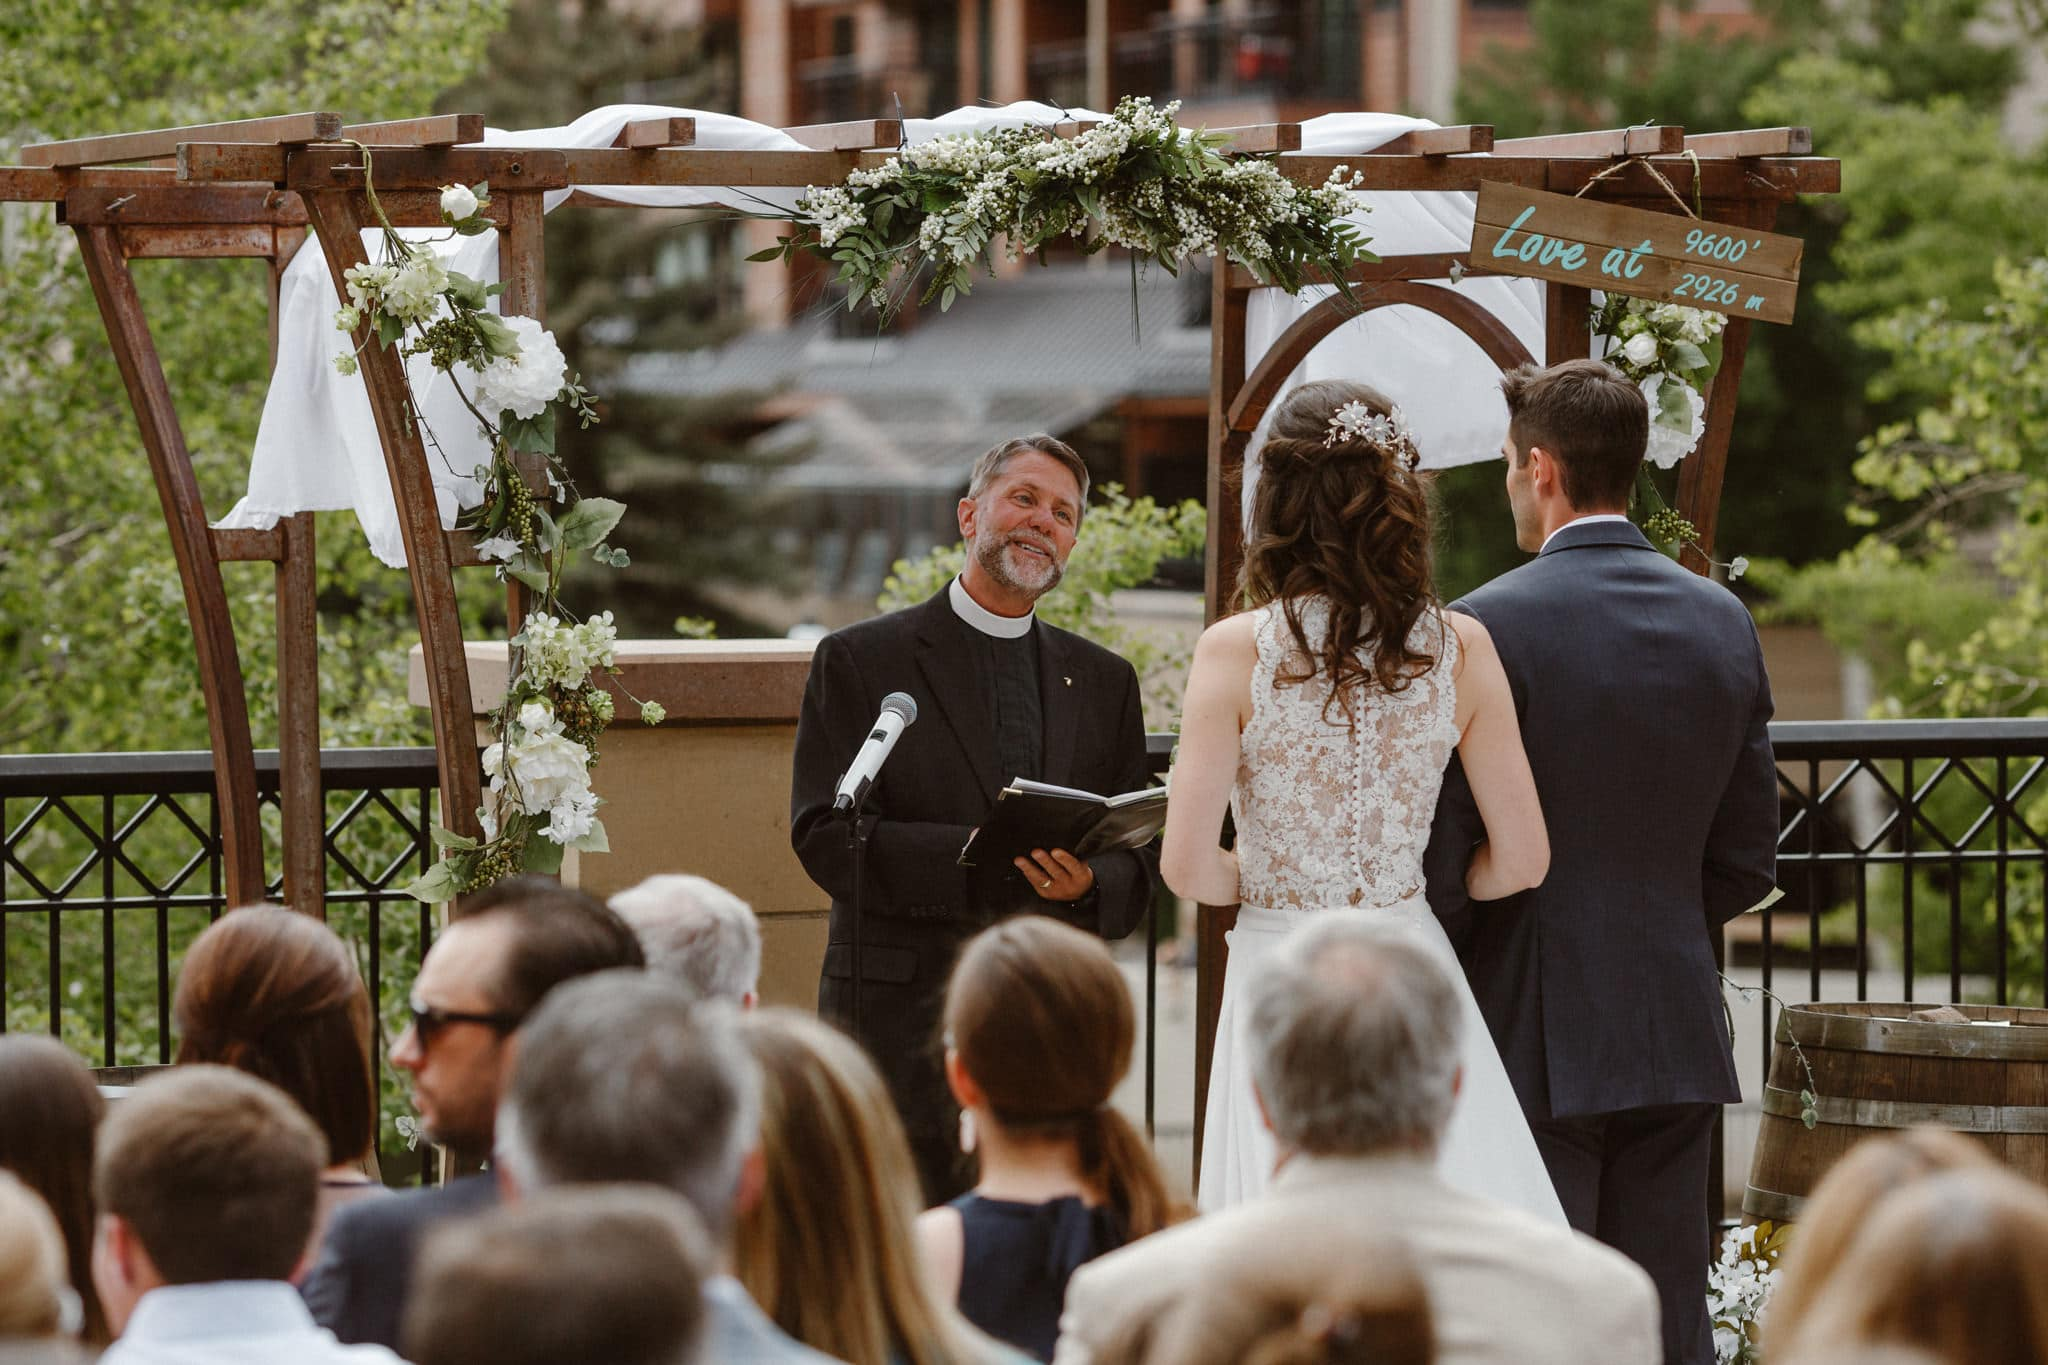 Main Street Station wedding ceremony, Breckenridge wedding photographer